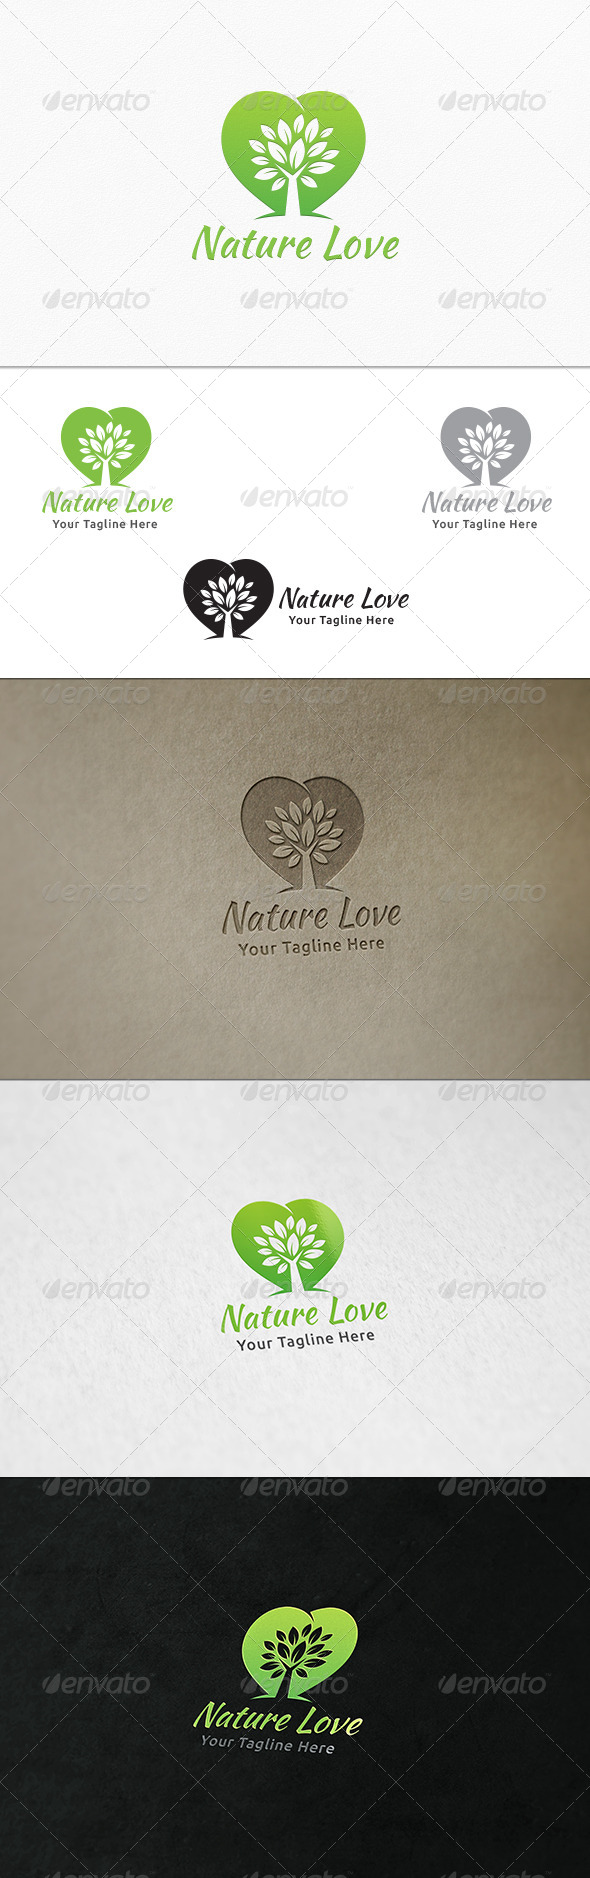 GraphicRiver Nature Love Logo Template 8052769